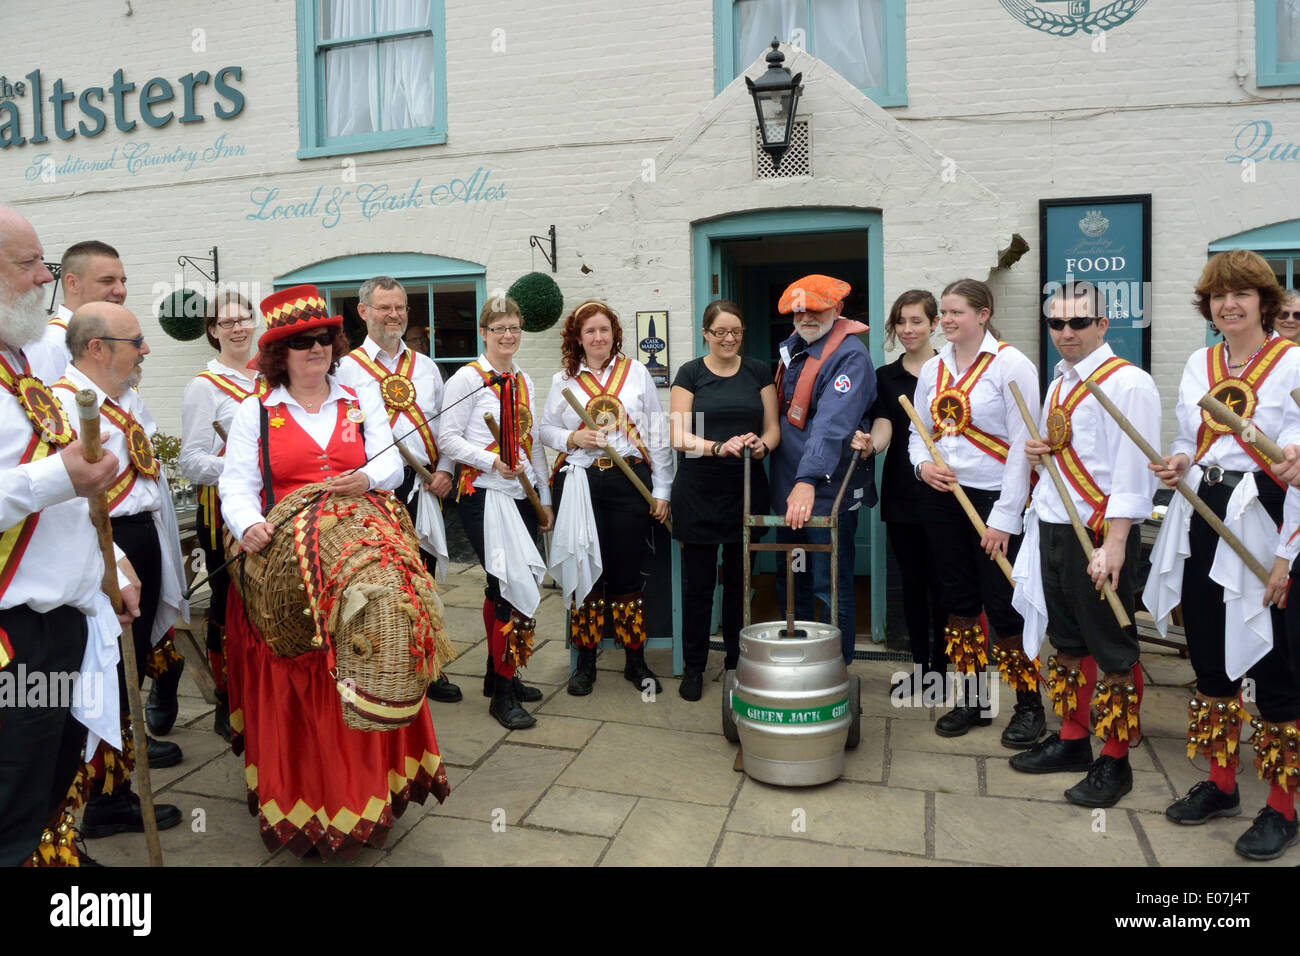 Skipper of wherry Albion with members of Golden Star Morris with the first keg of Jenny Morgan beer at Maltsters Stock Photo